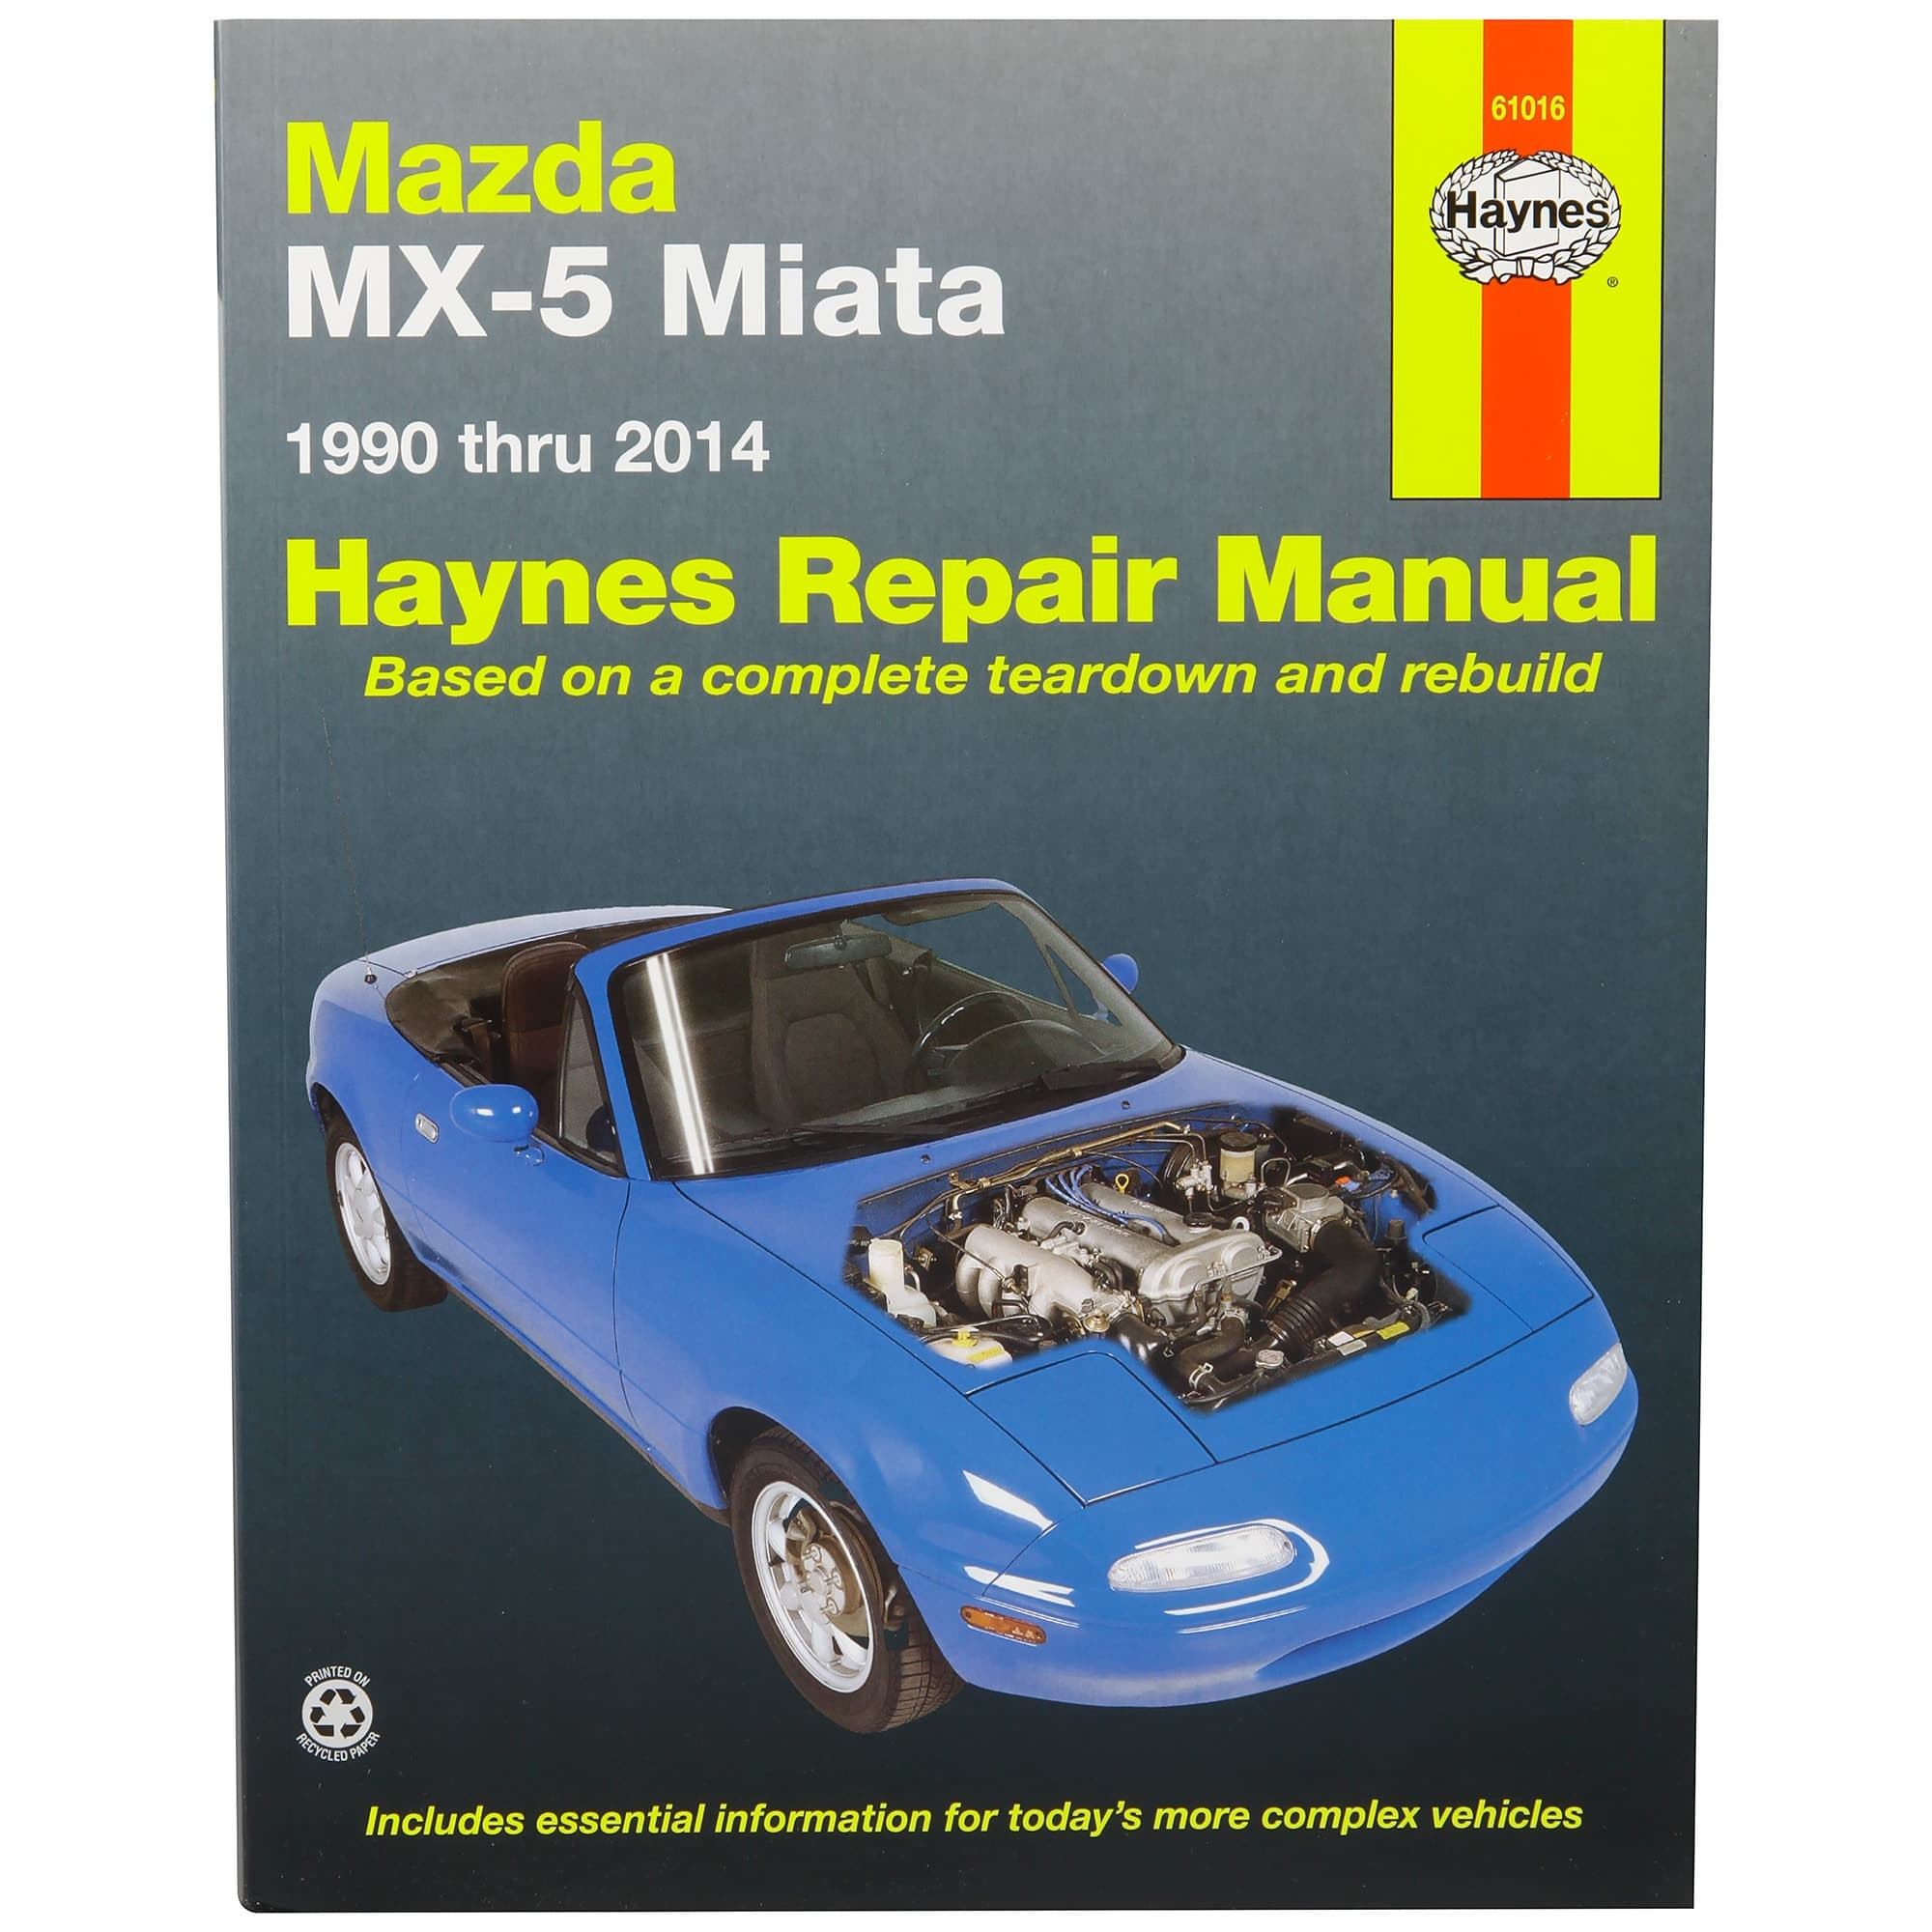 211 571 book haynes repair manual mossmiata rh mossmiata com Otawwa Workshop Manuals Pontiac Shop Manual 2007